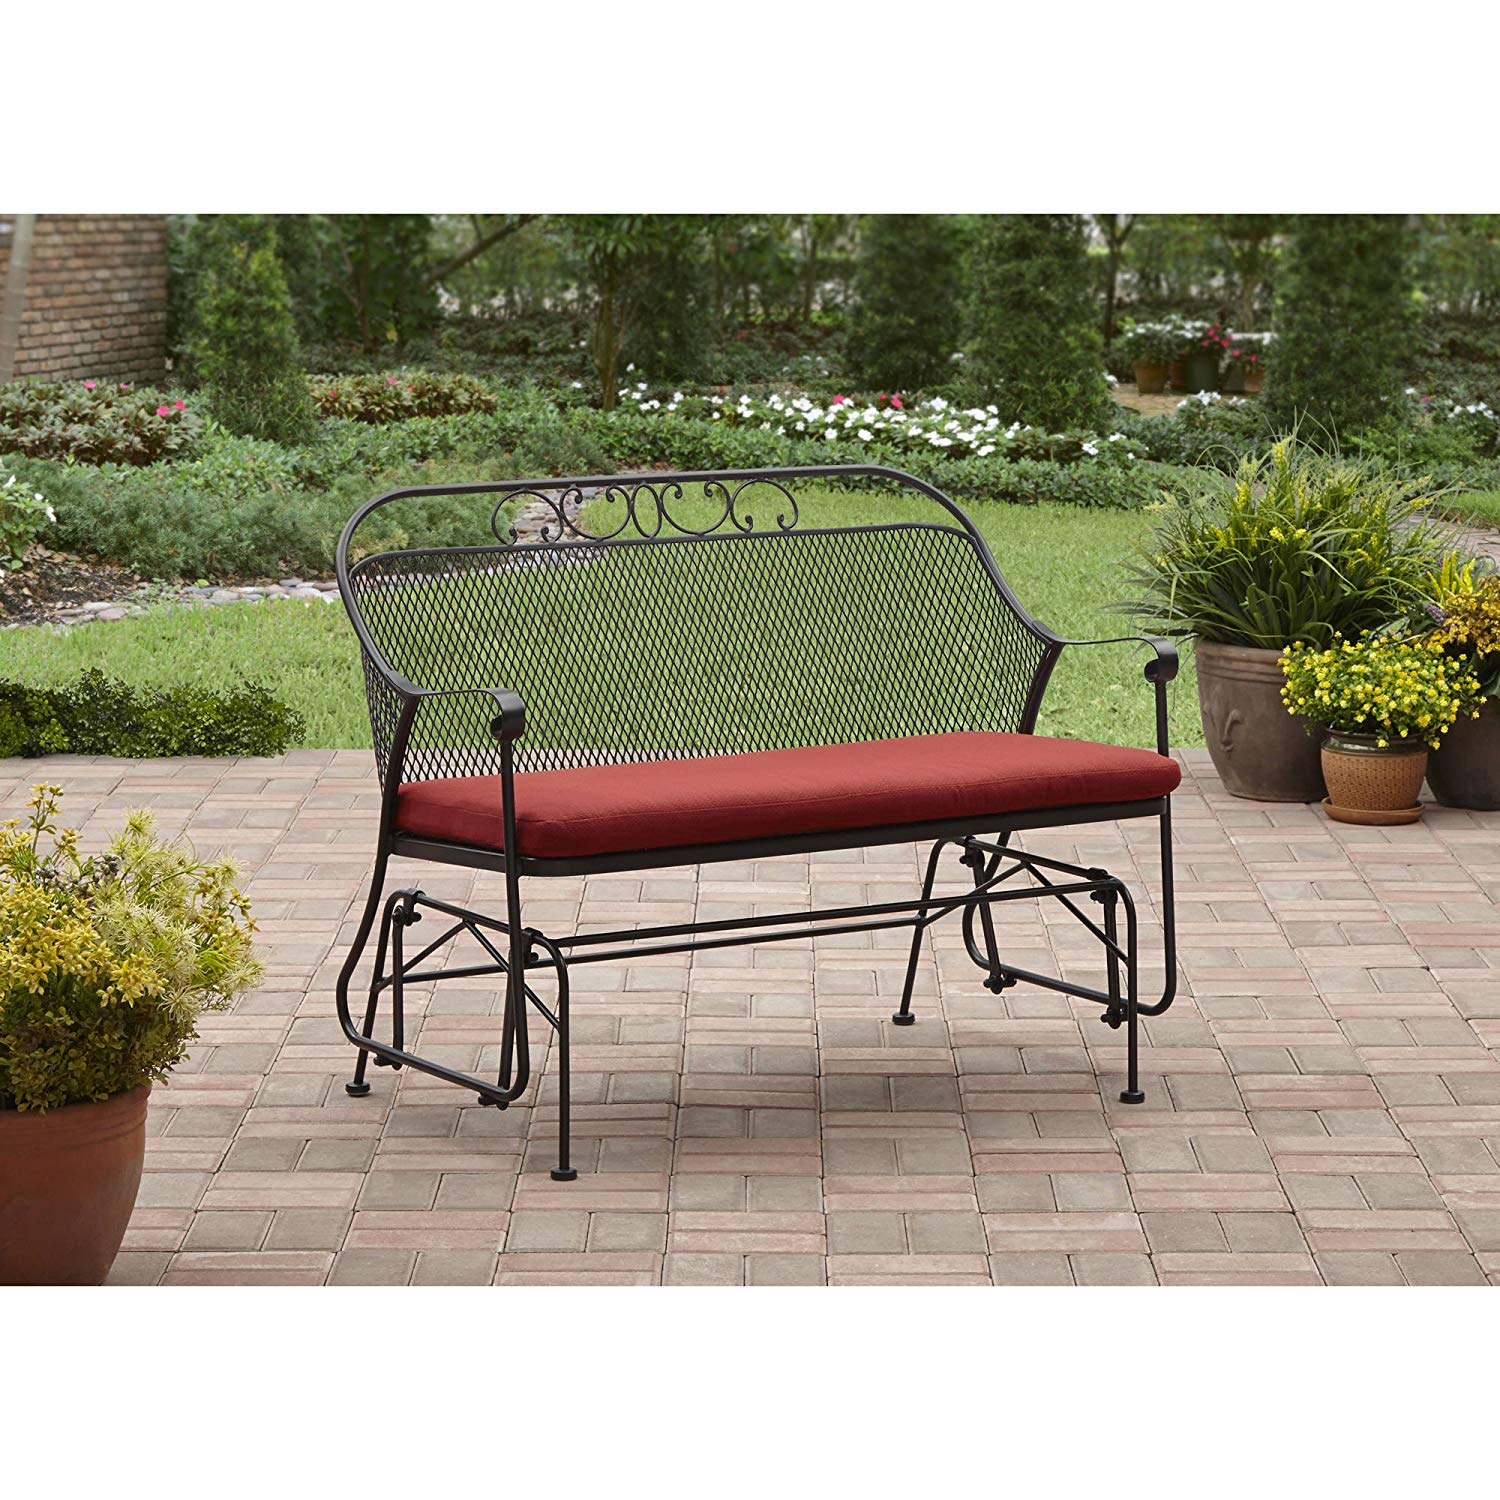 Cheap Outdoor Cushion Fabric Water Resistant, Find Outdoor Throughout Glider Benches With Cushion (View 11 of 25)